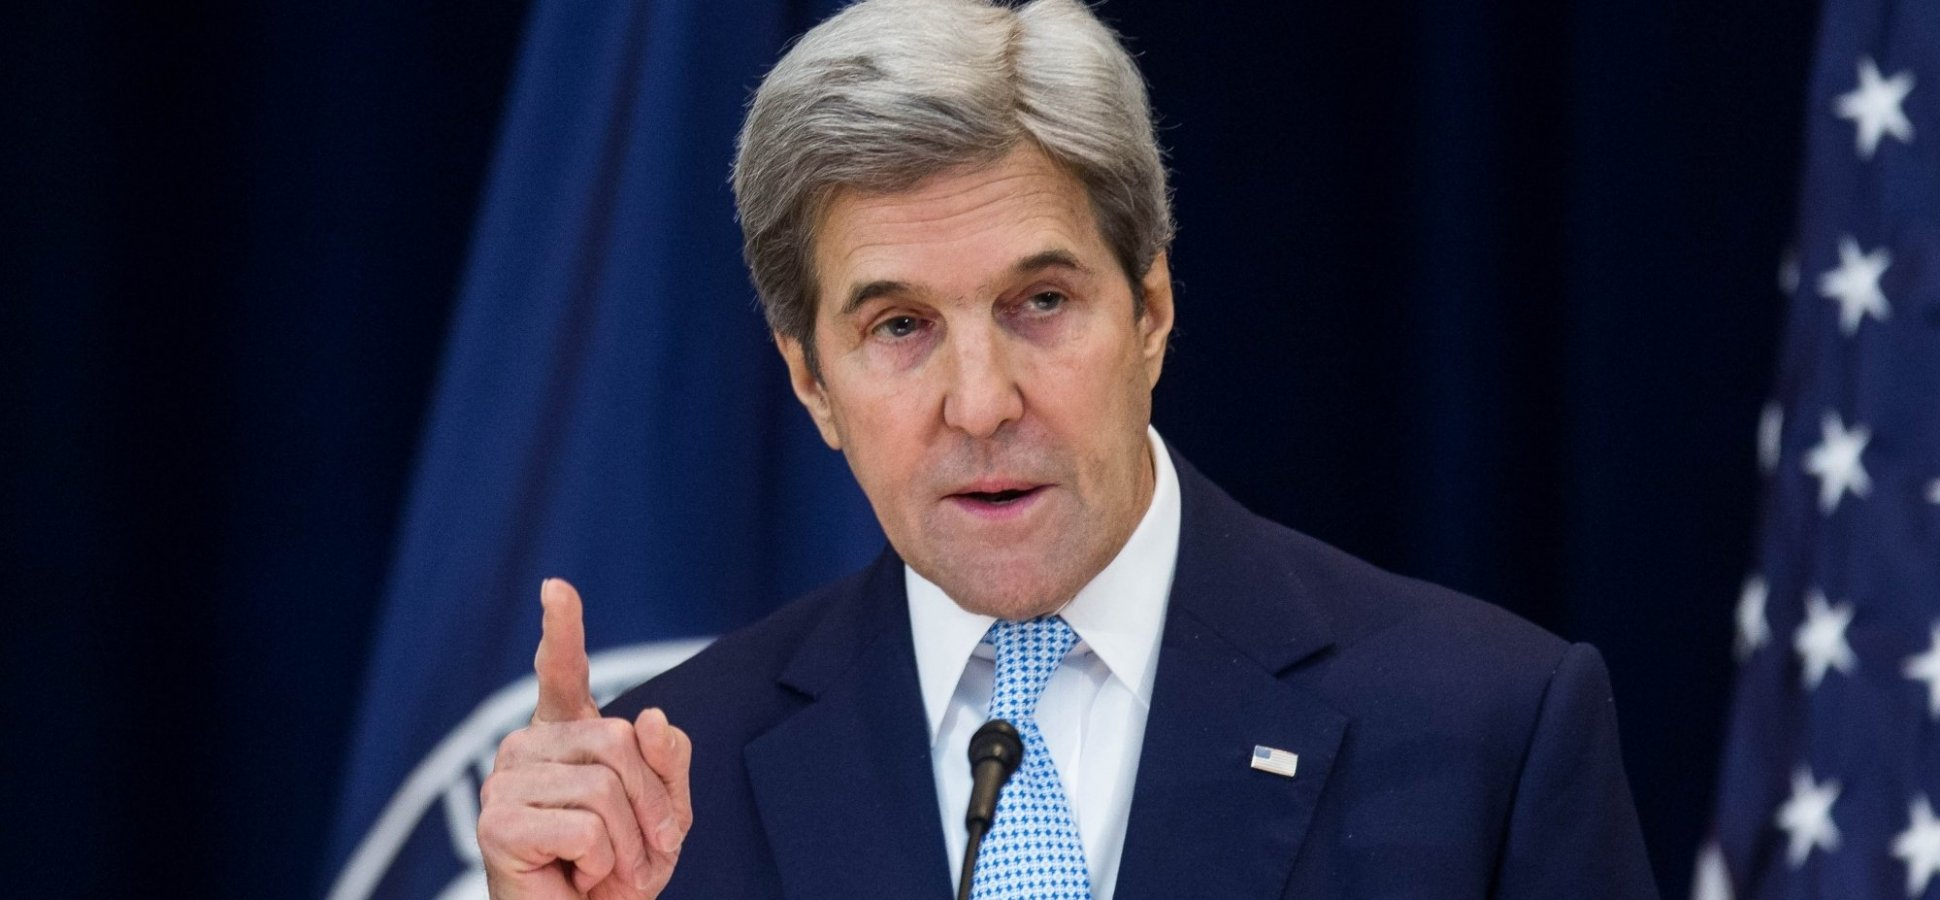 In 3 Words, John Kerry Captures the Essence of Great Leadership